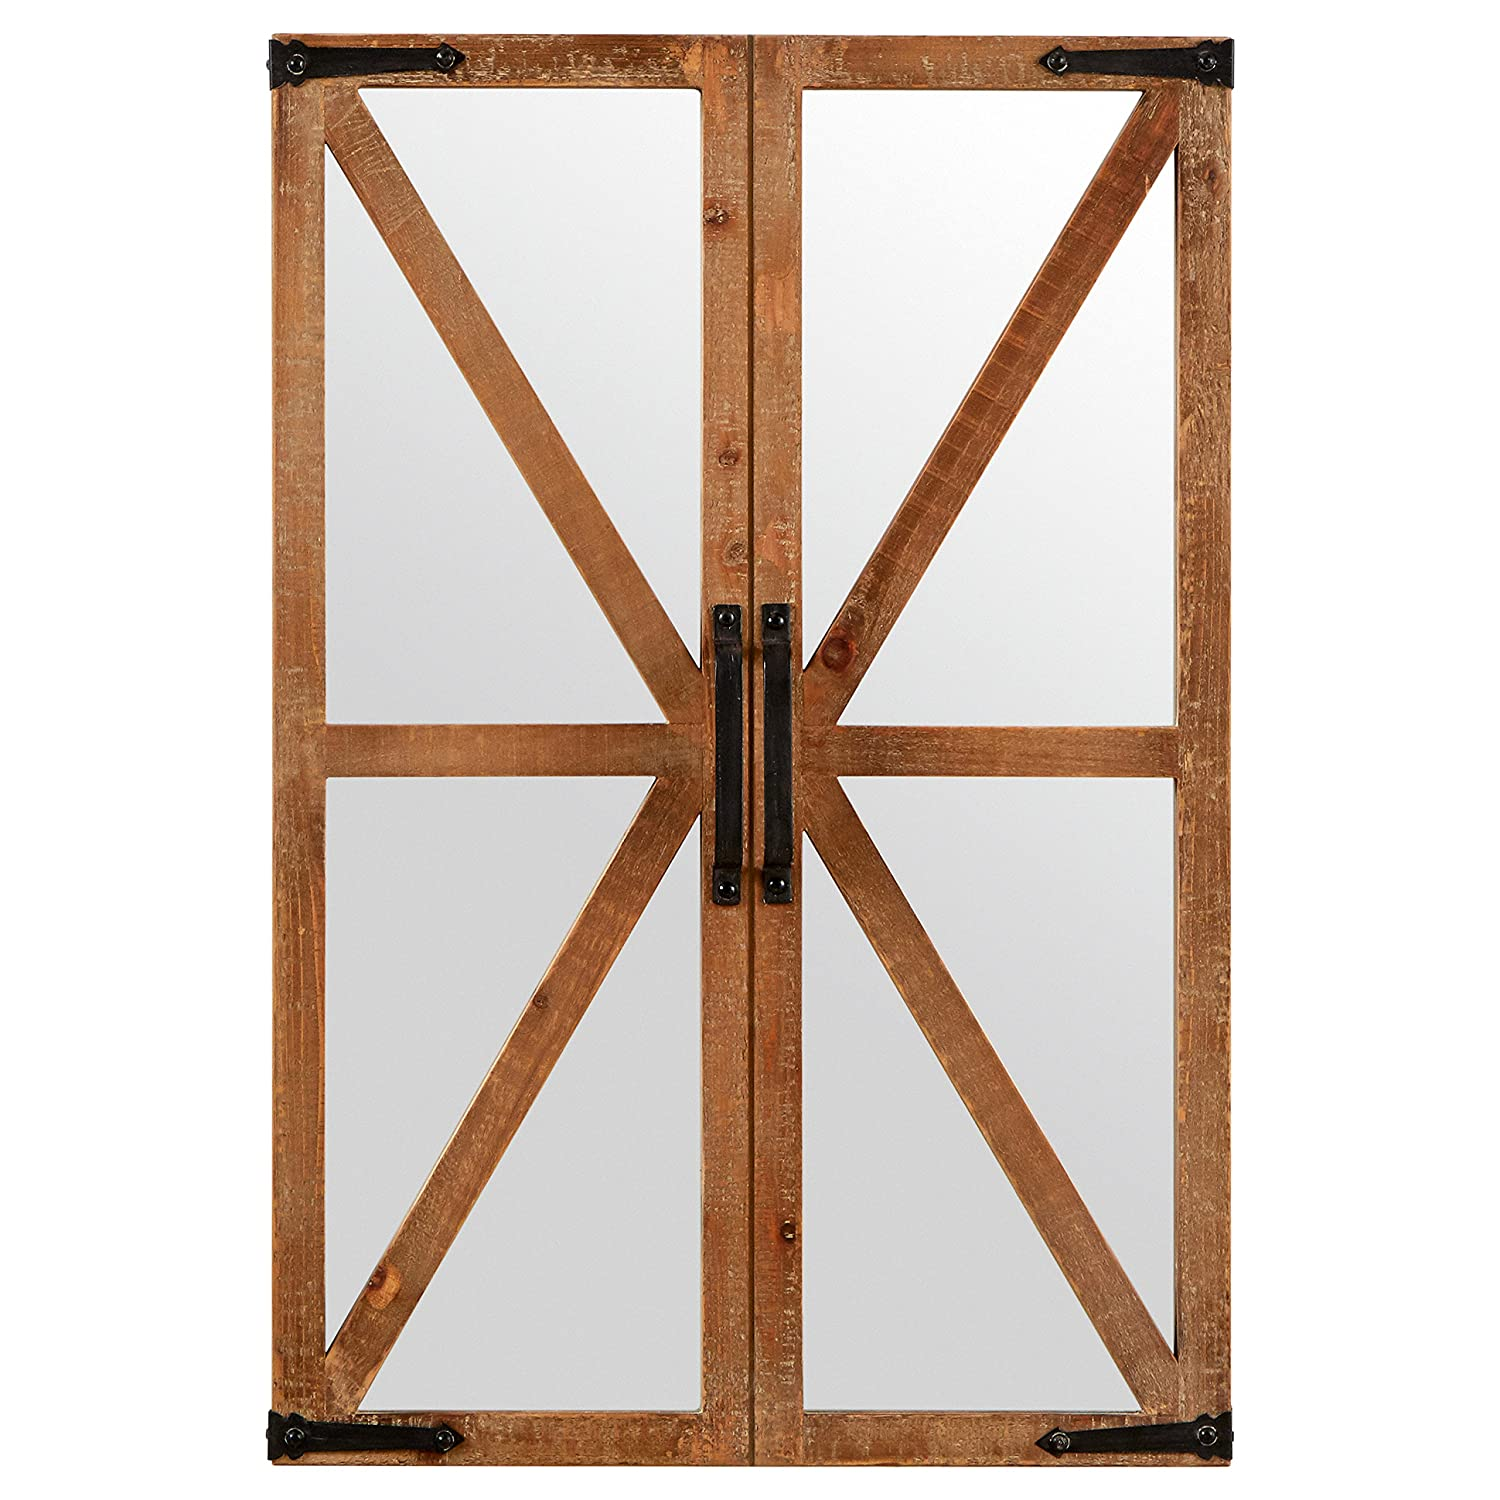 "Stone & Beam Rustic Wood and Iron Barn Door Mirror, 30""H, Natural"